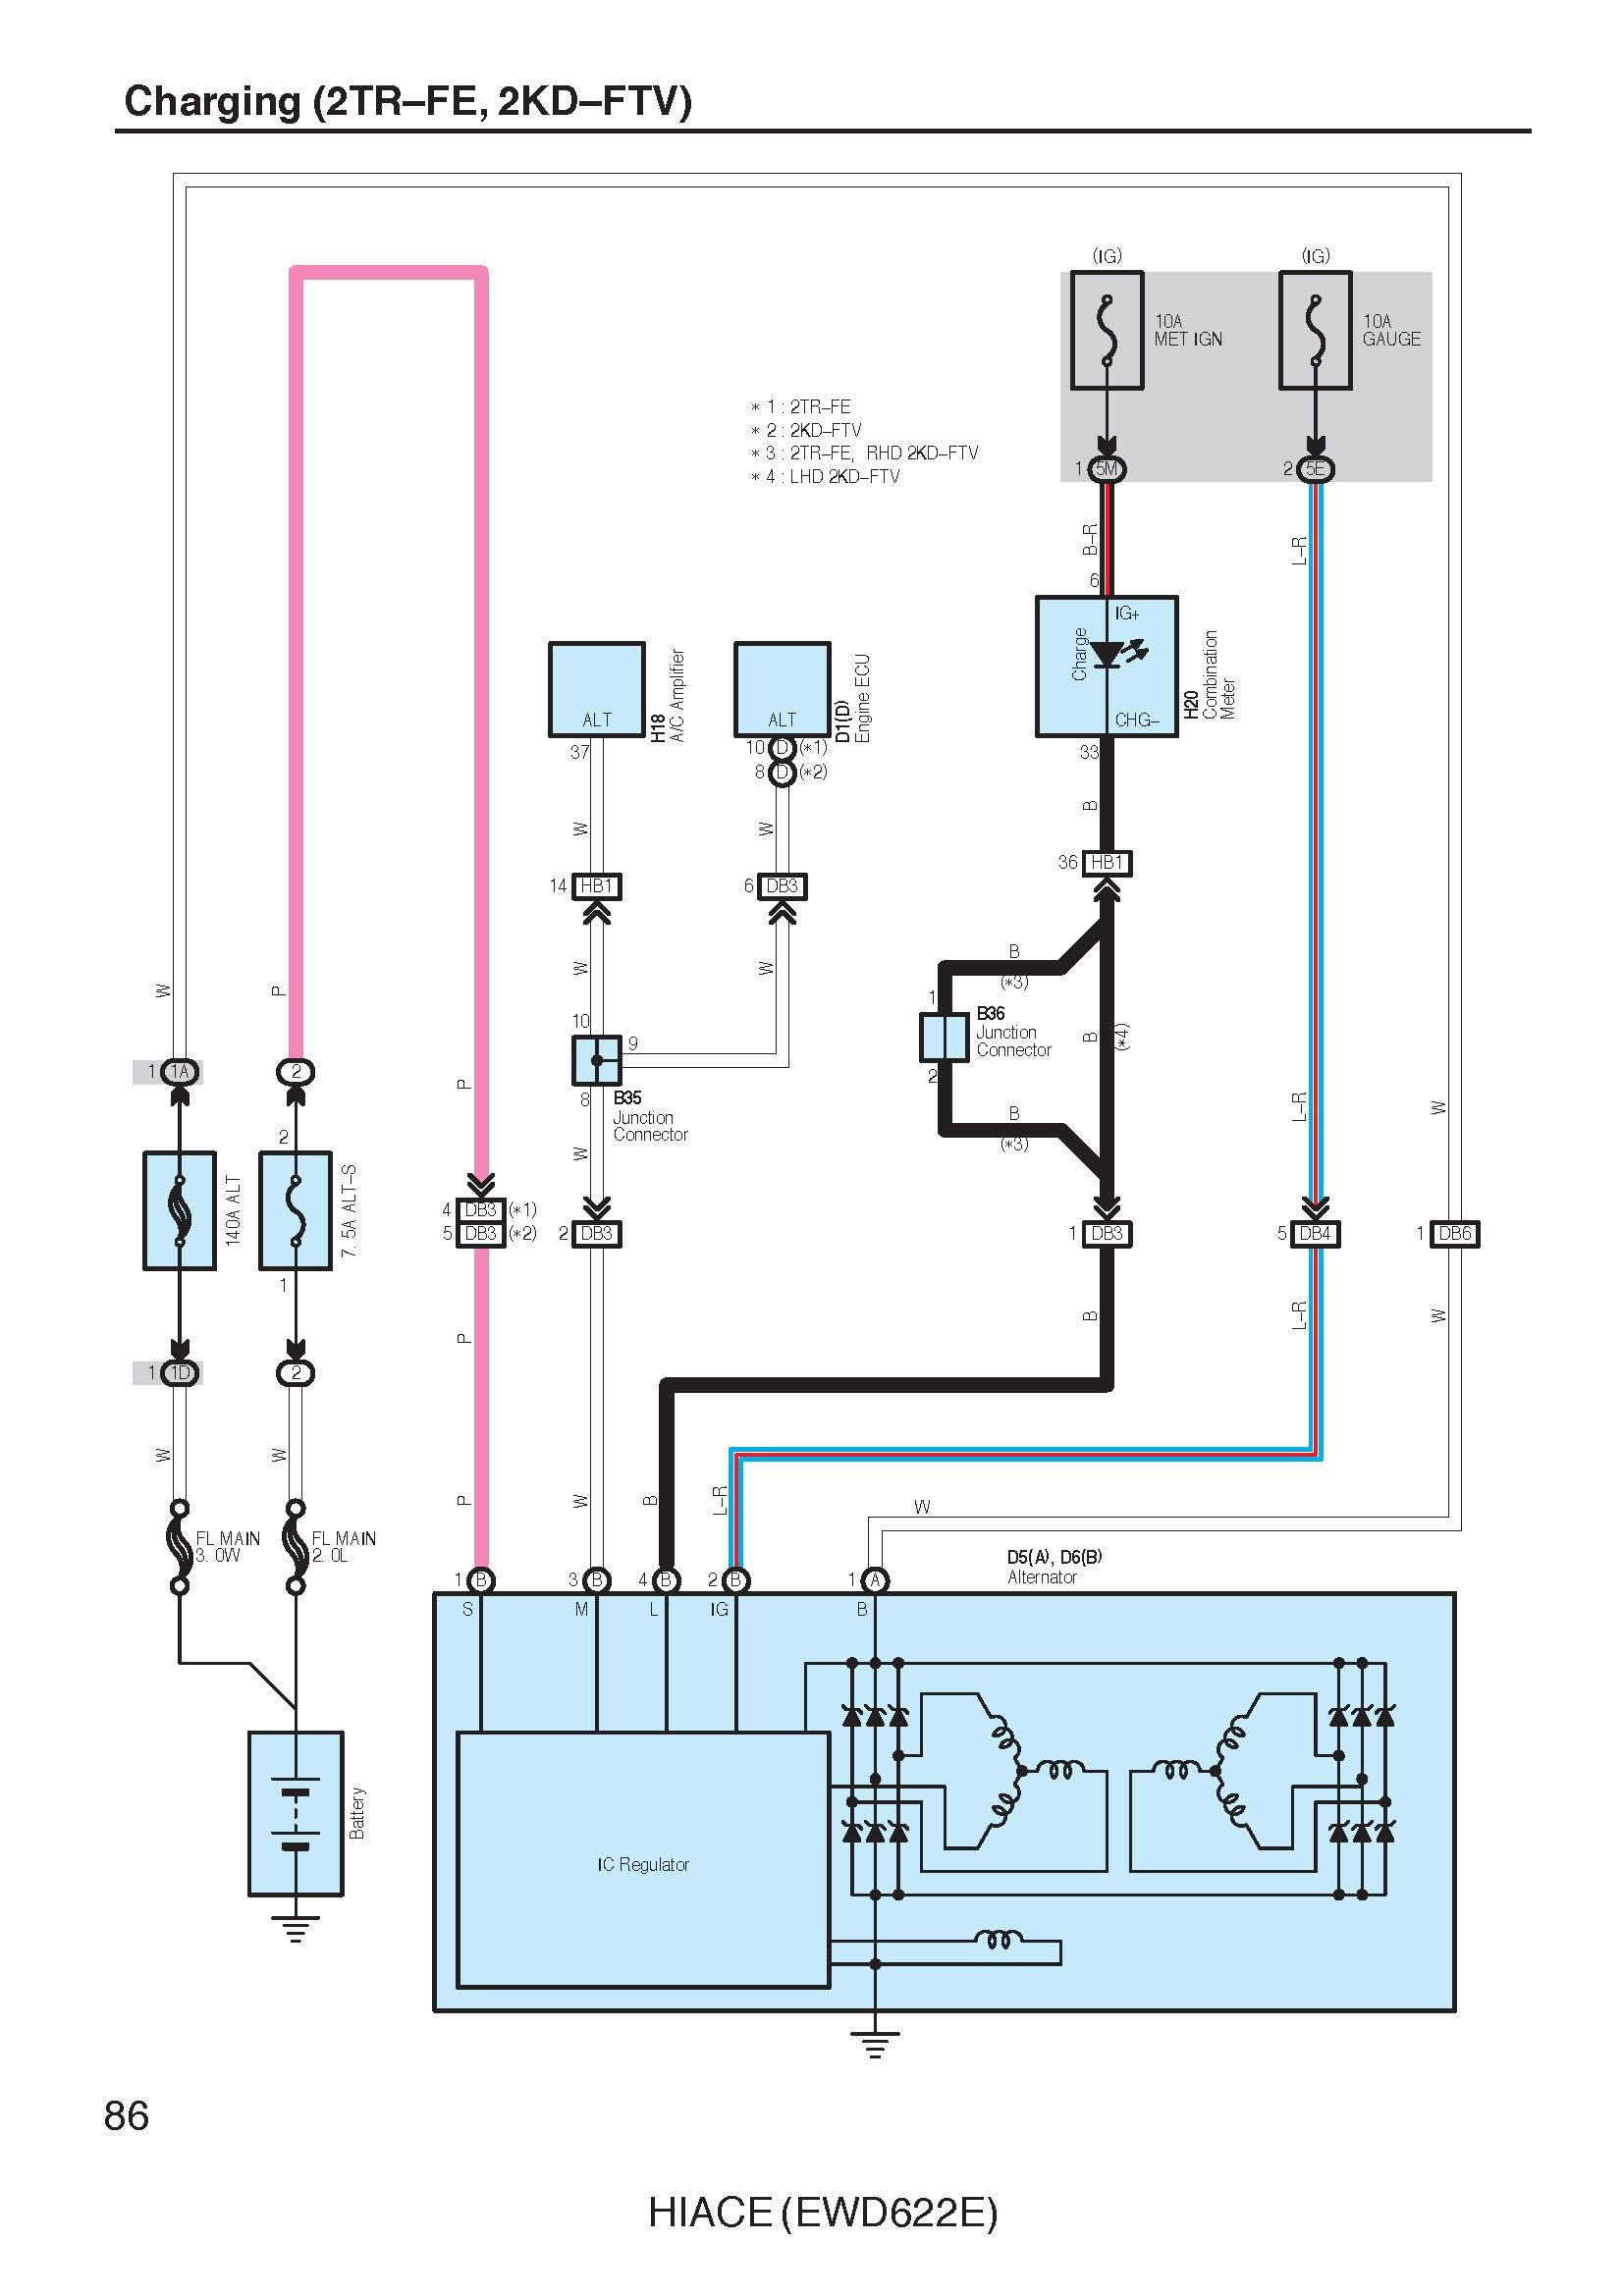 Peachy Wiring Diagrams Pdf Wiring Diagram Data Schema Wiring Digital Resources Funiwoestevosnl